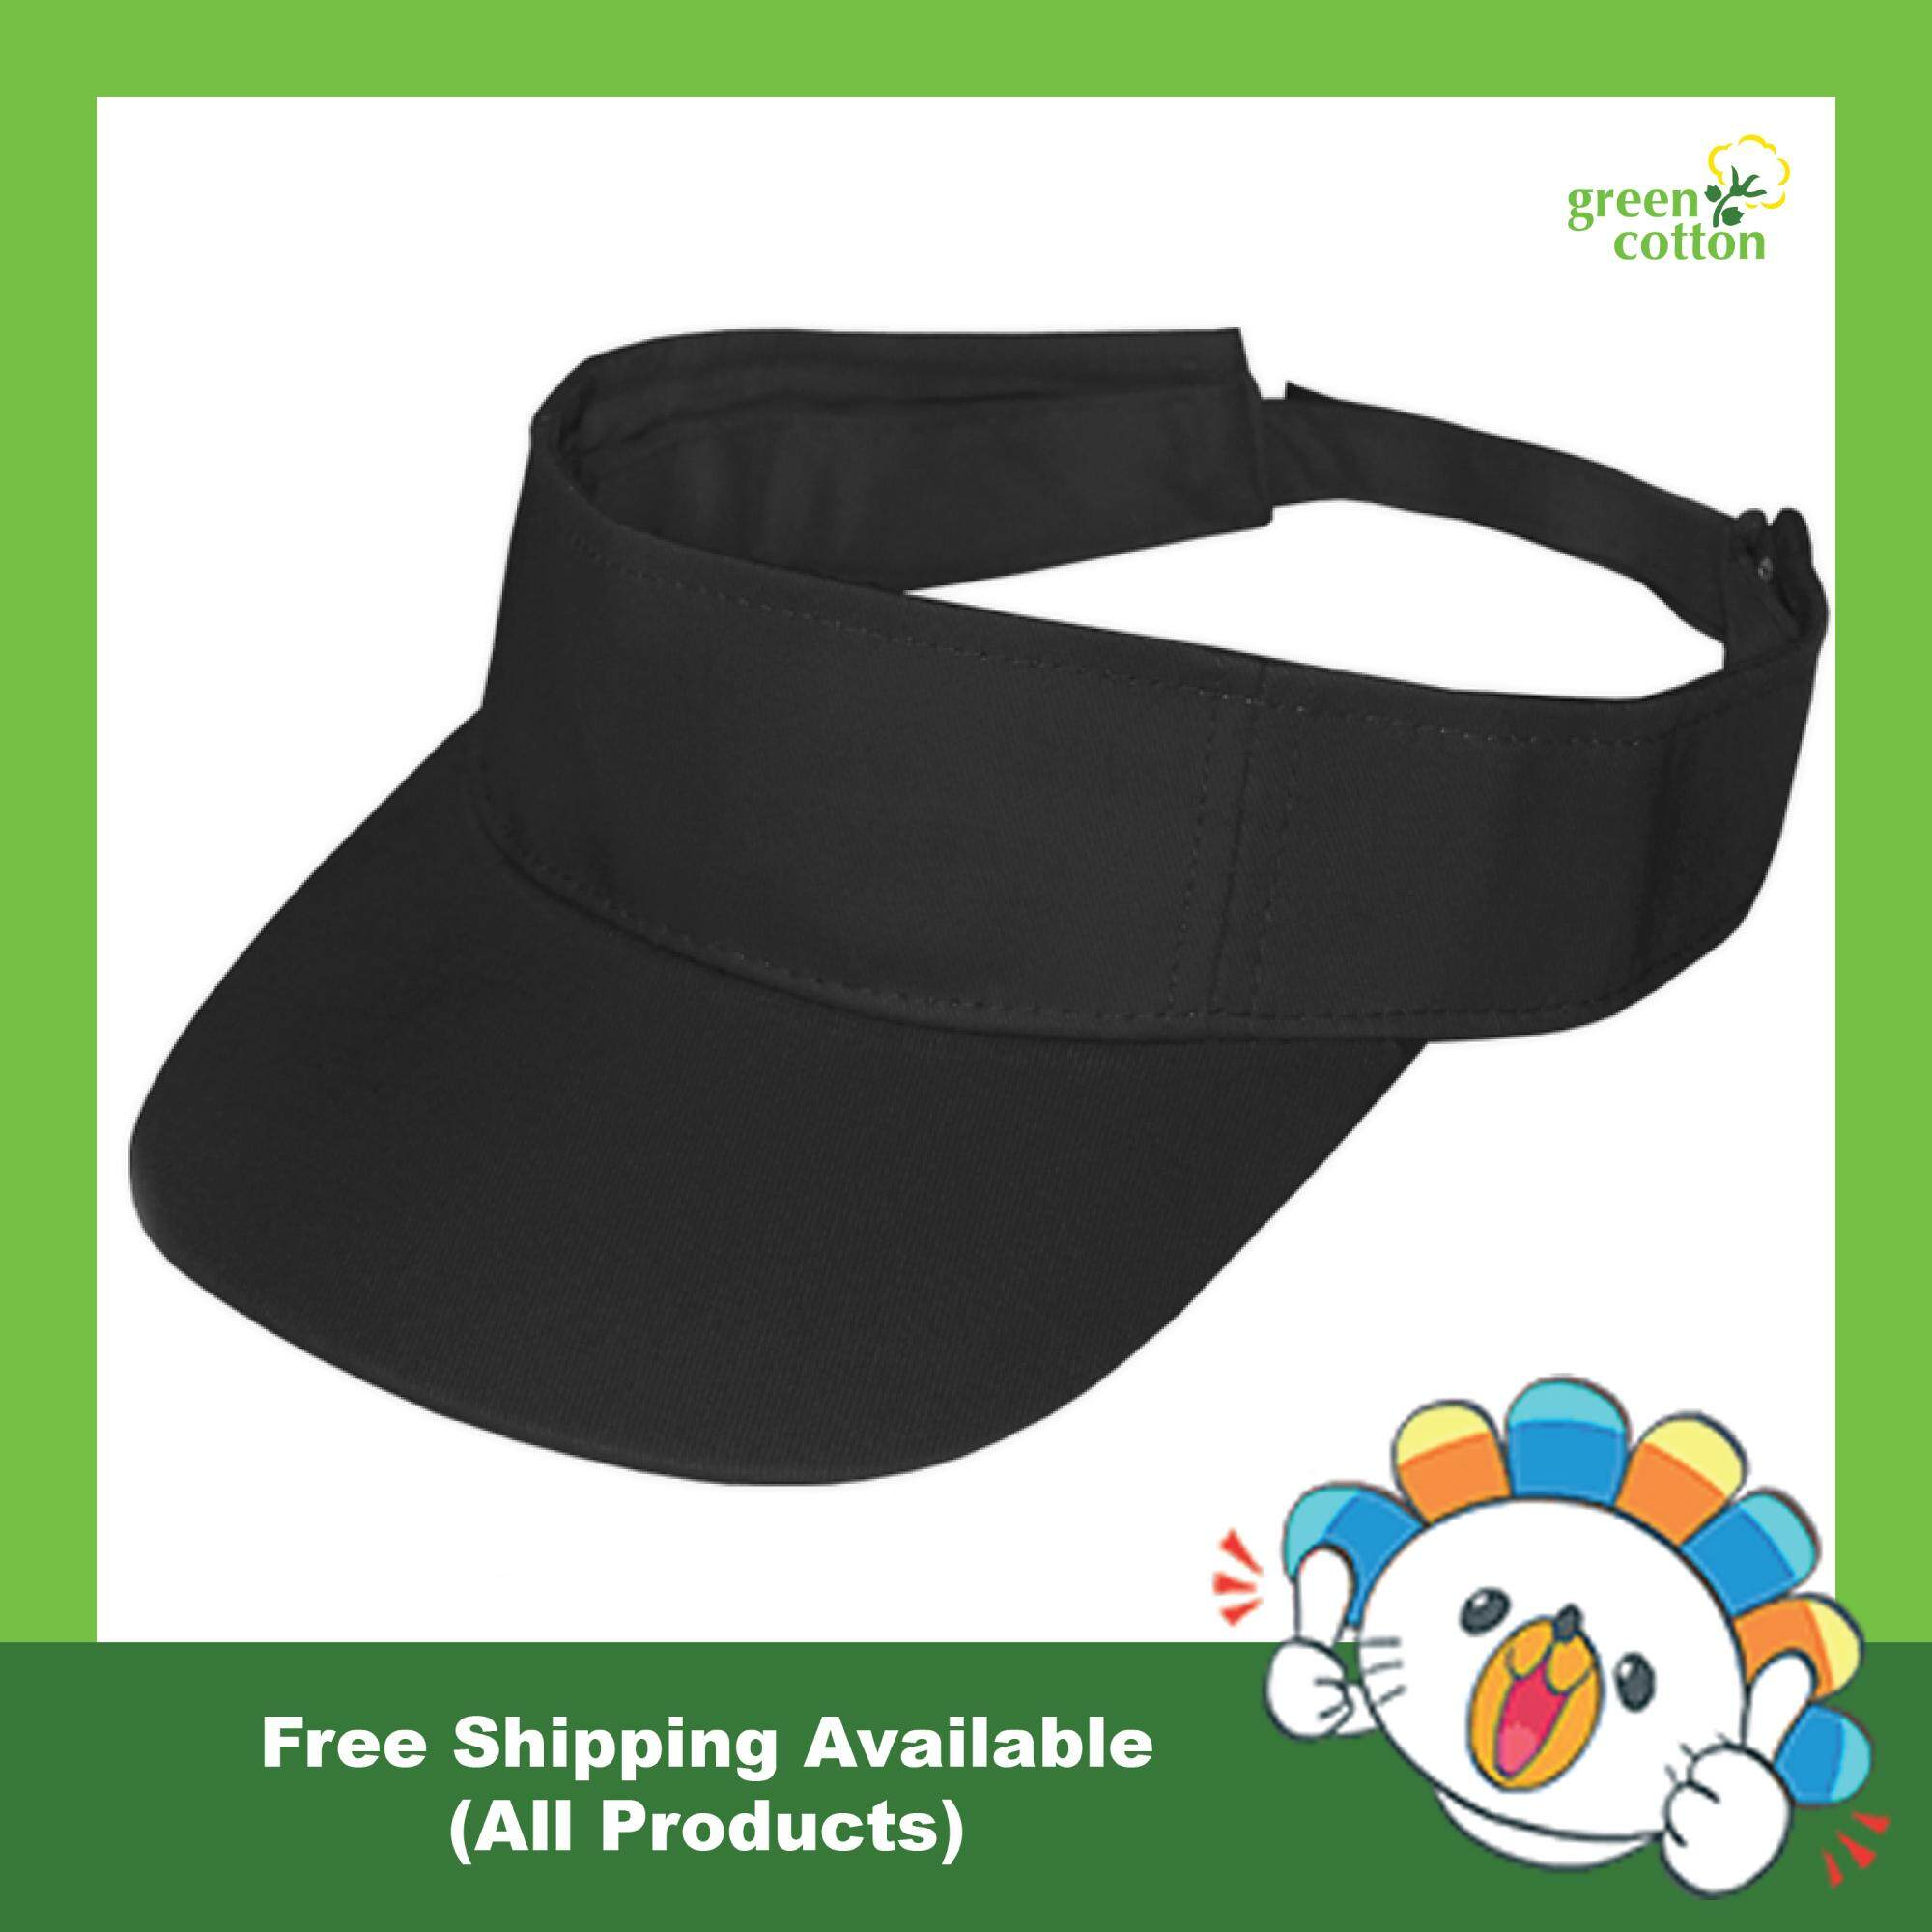 97feac7d1b2e Best Seller Cotton Twill Quality Men's Ladies Outdoor Summer Cap Sunvisor  Hat UV Protection One Size